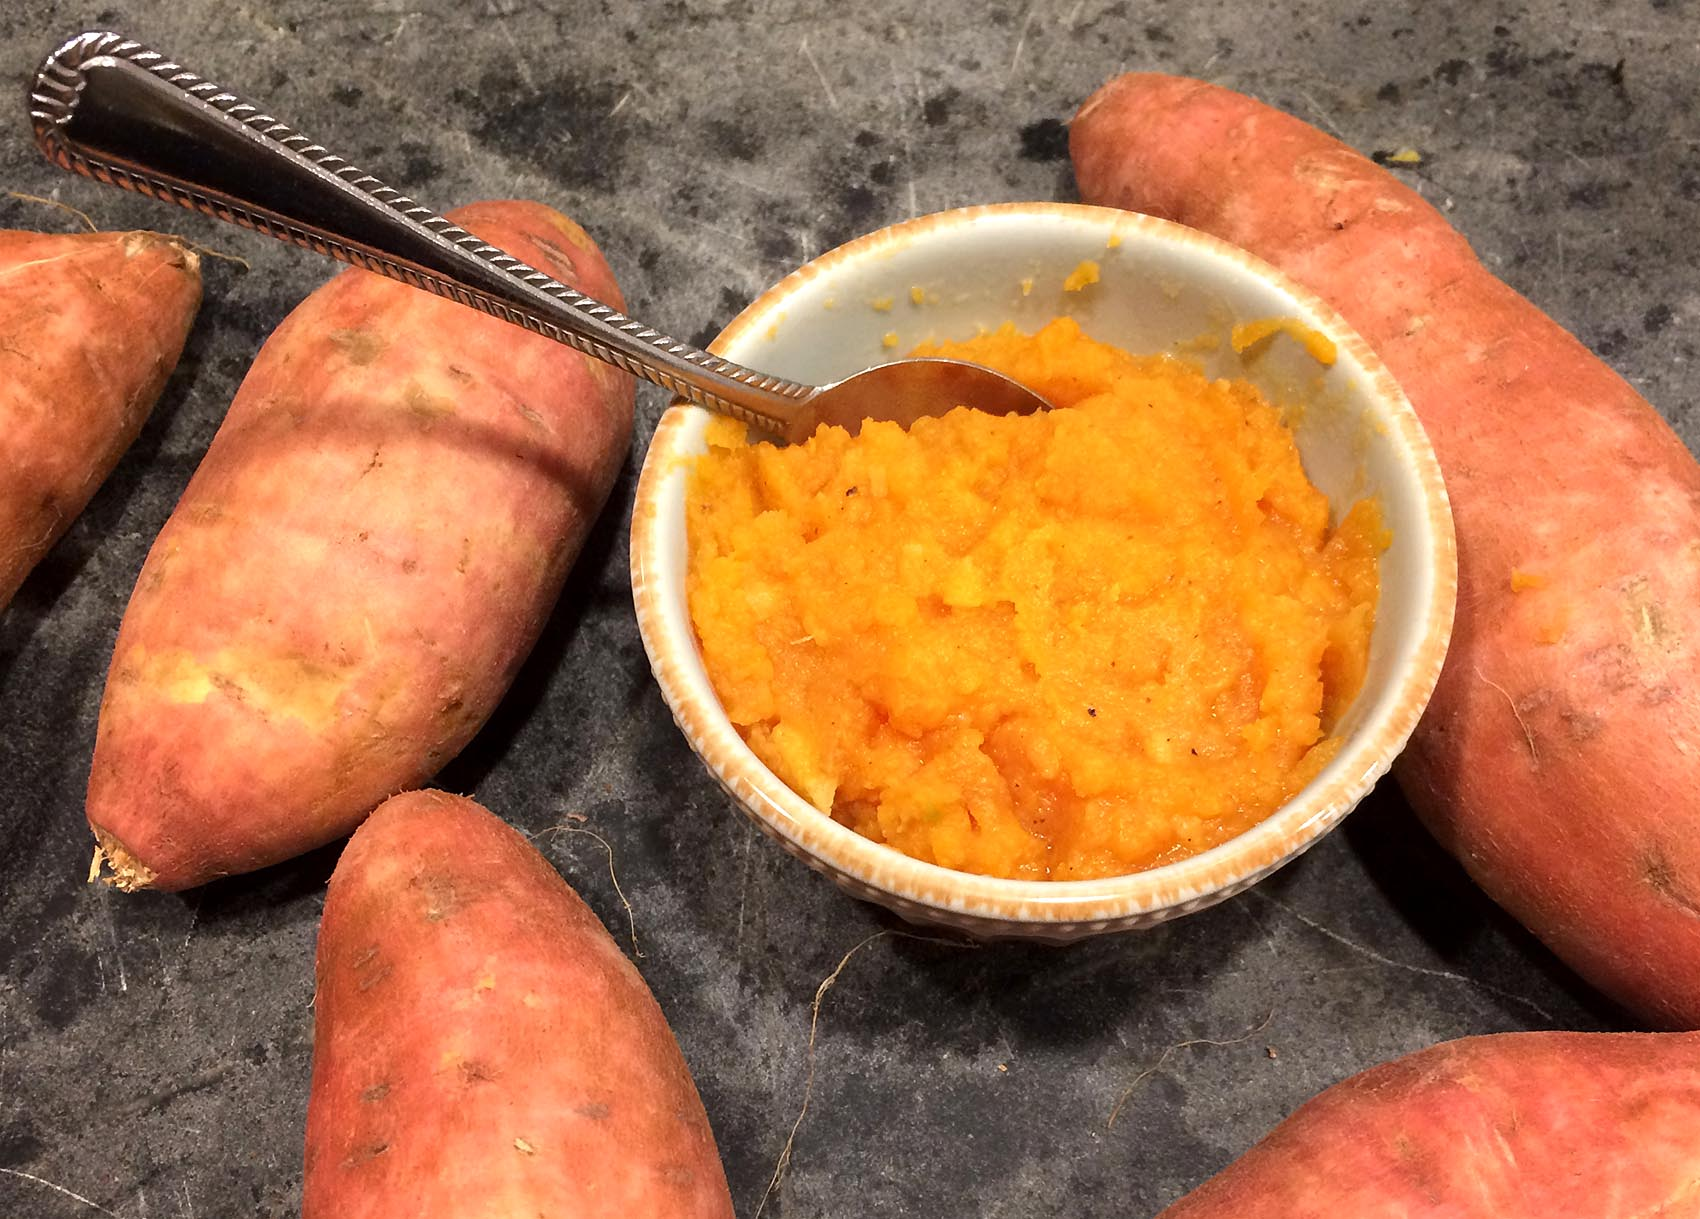 Kathy's sweet potato puree with maple, ginger, nutmeg and apple cider. (Kathy Gunst for Here & Now)